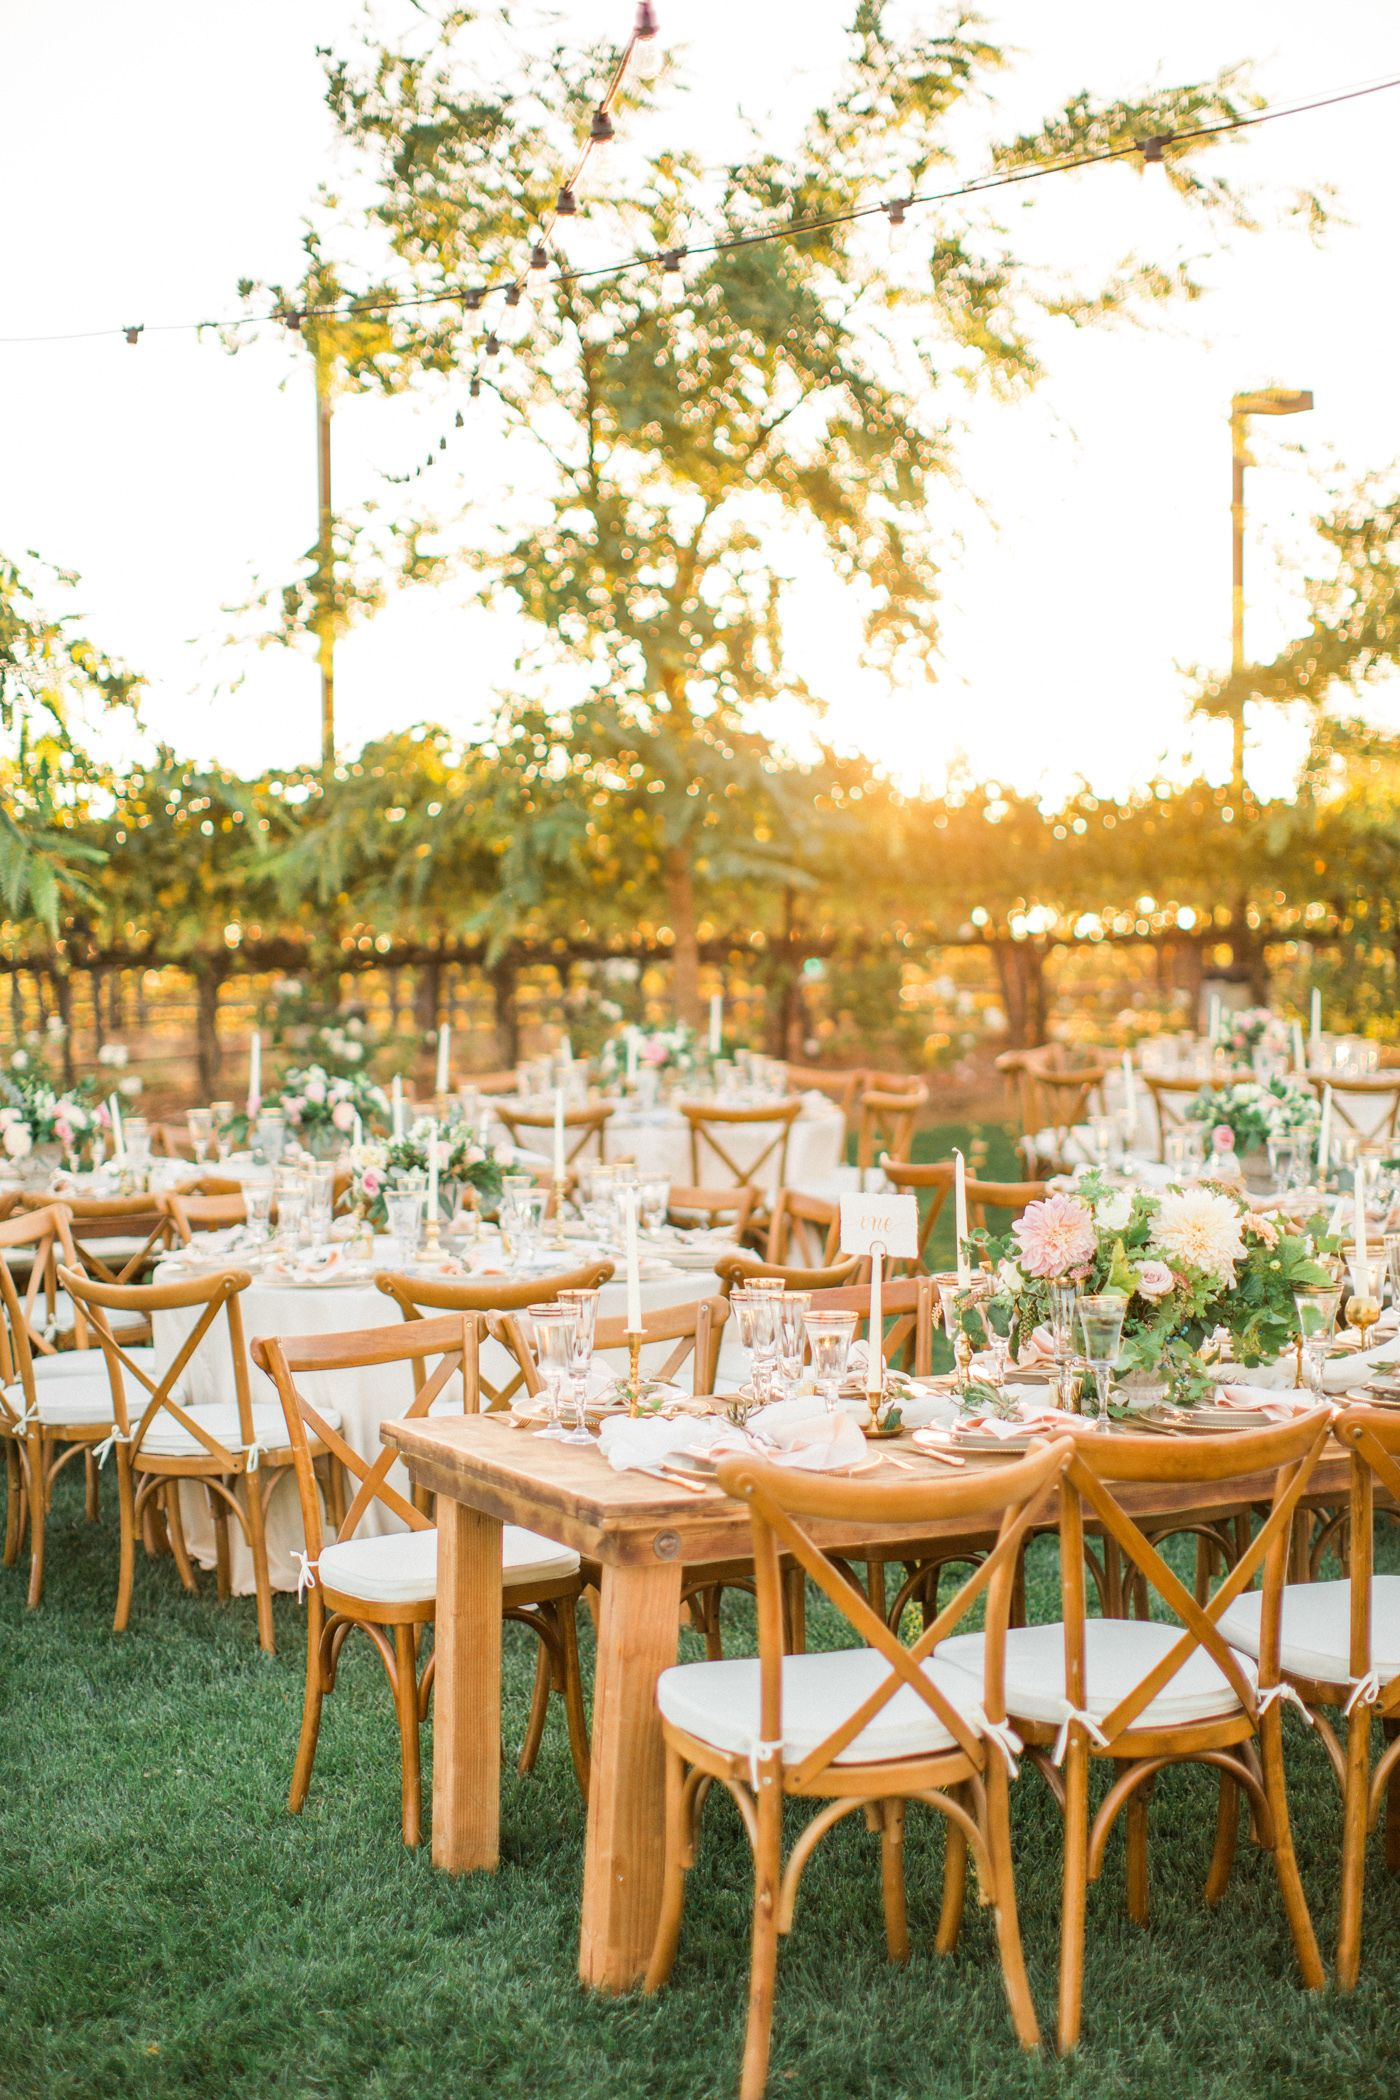 An Al Fresco Wedding Under The Tuscan Sun Garden Wedding Inspiration Small Garden Wedding Tuscan Inspired Wedding